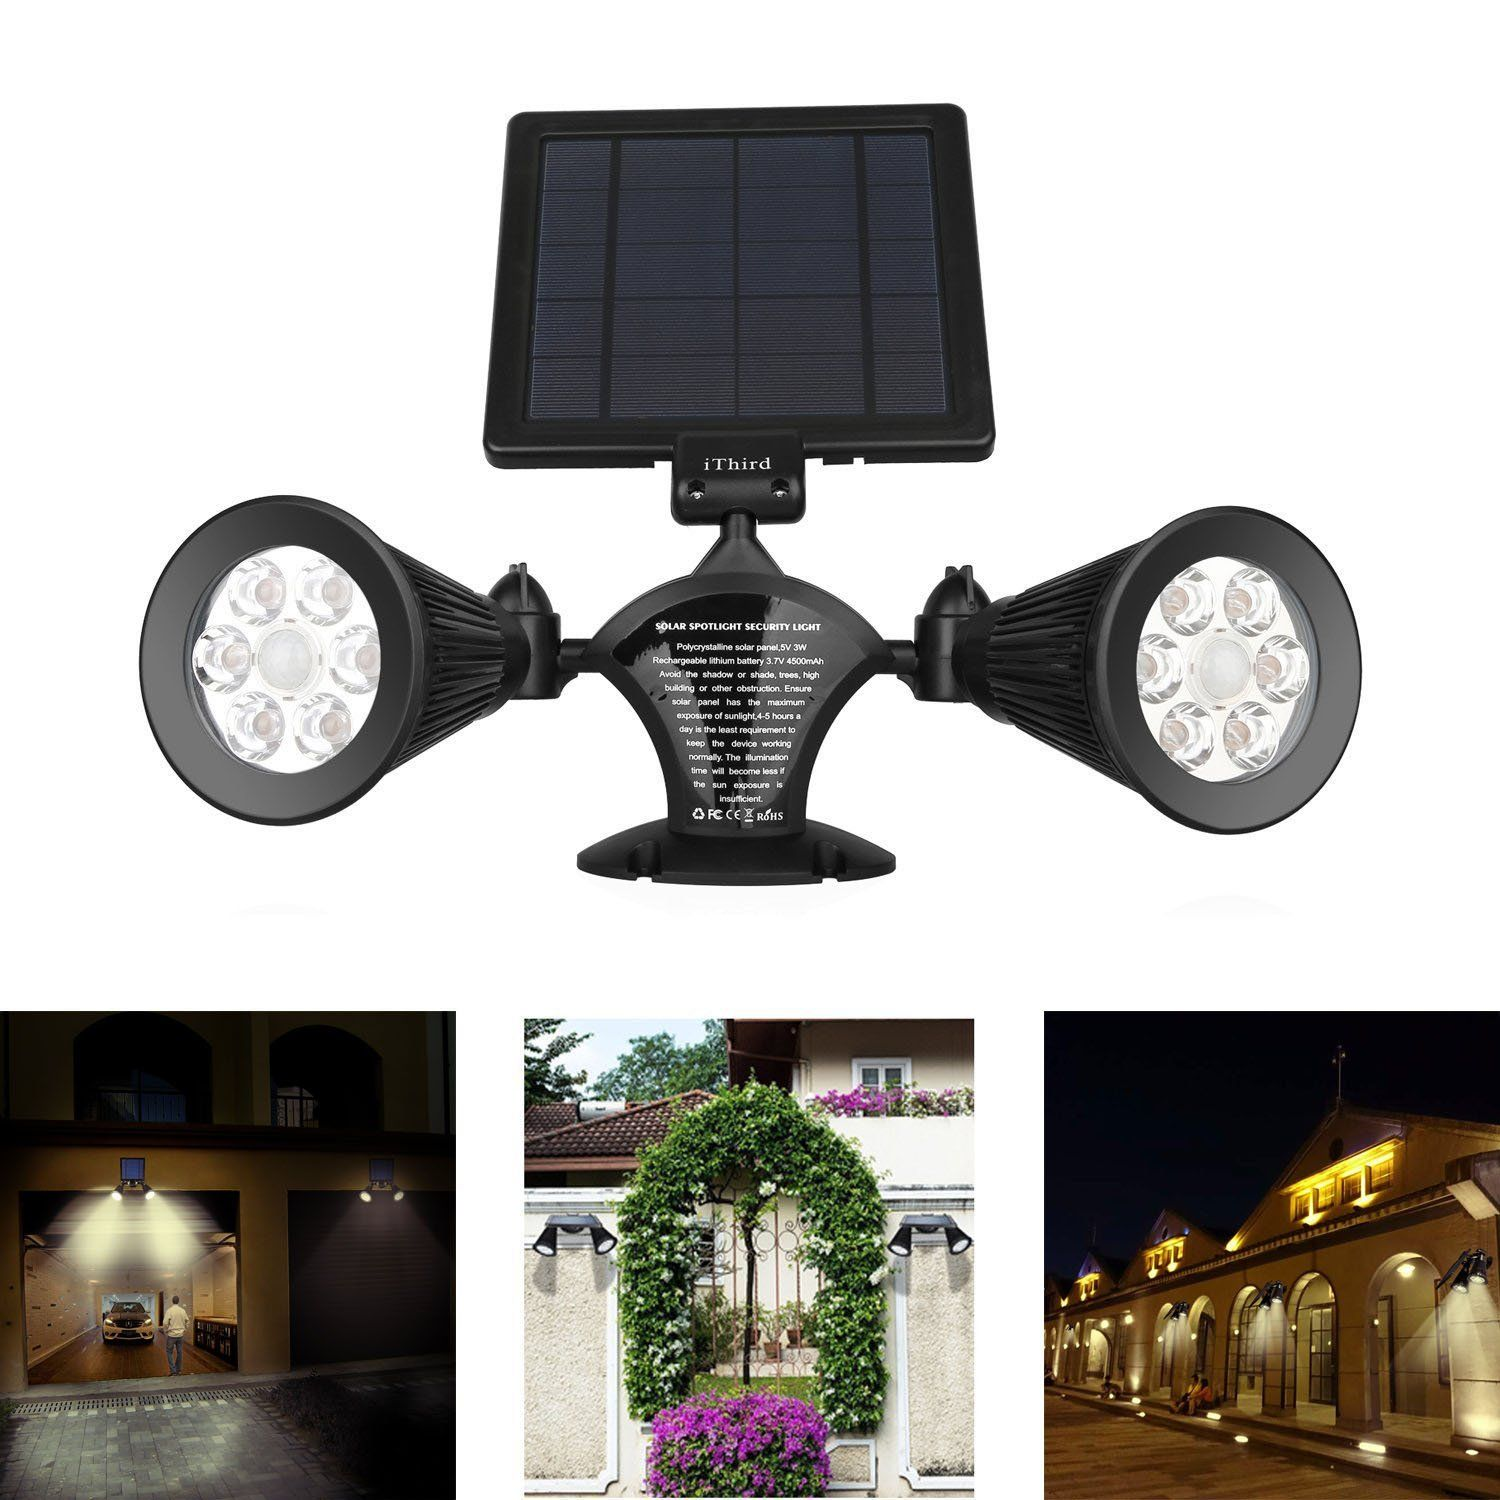 Solar lights outdoor motion sensor ithird 12 led 600lm solar solar lights outdoor motion sensor ithird 12 led 600lm solar powered security lights wall mounted for garage garden yard porch driveway pool waterproof aloadofball Gallery